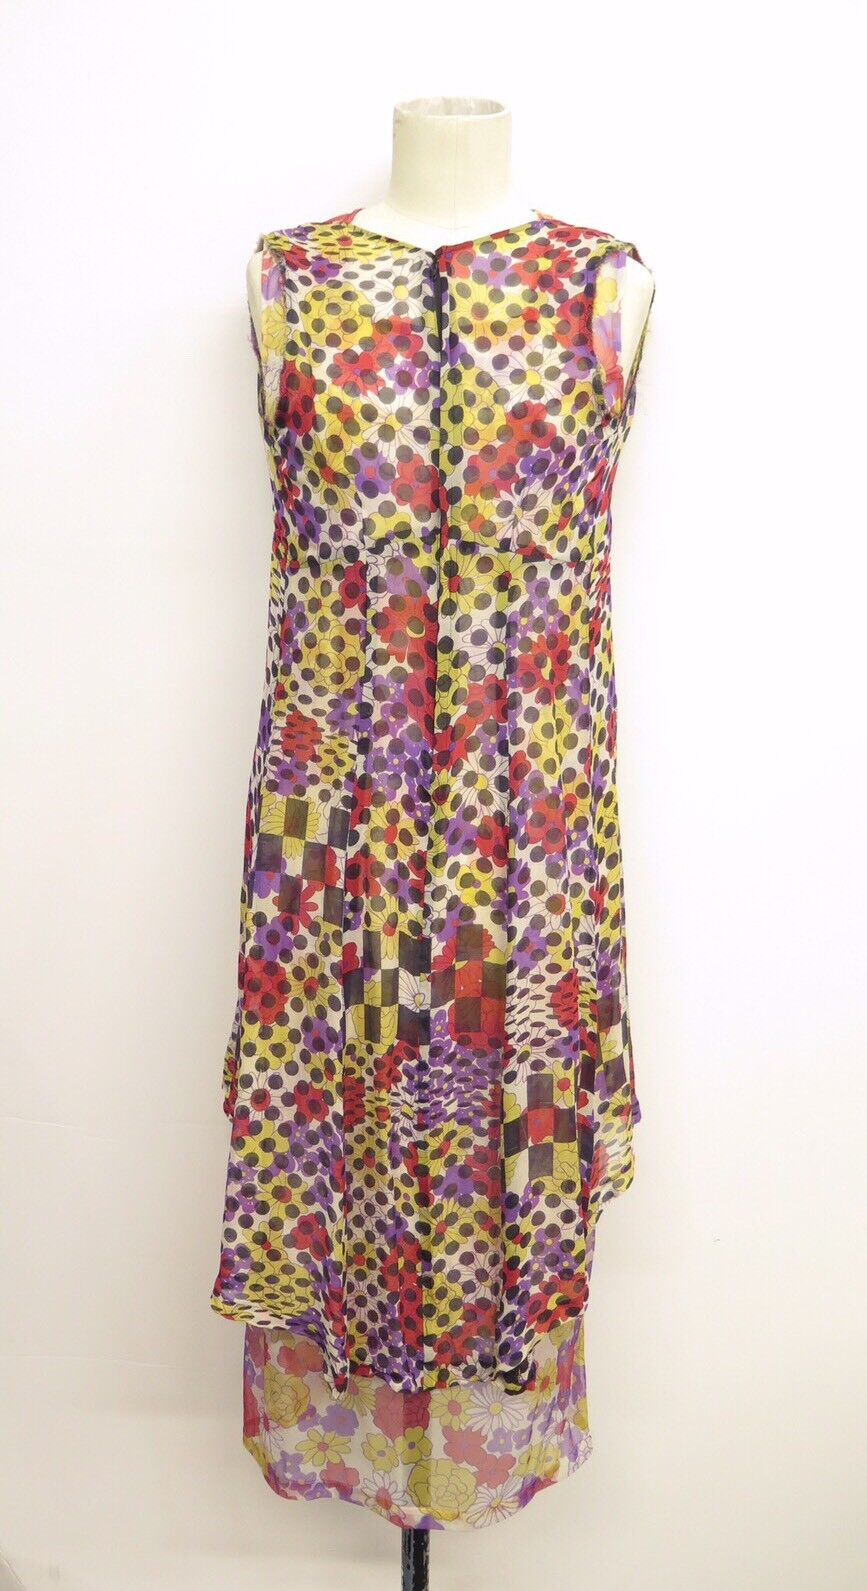 Comme Des Garçons Early 2000's Silk Layered Floral Sheath Dress Sz S